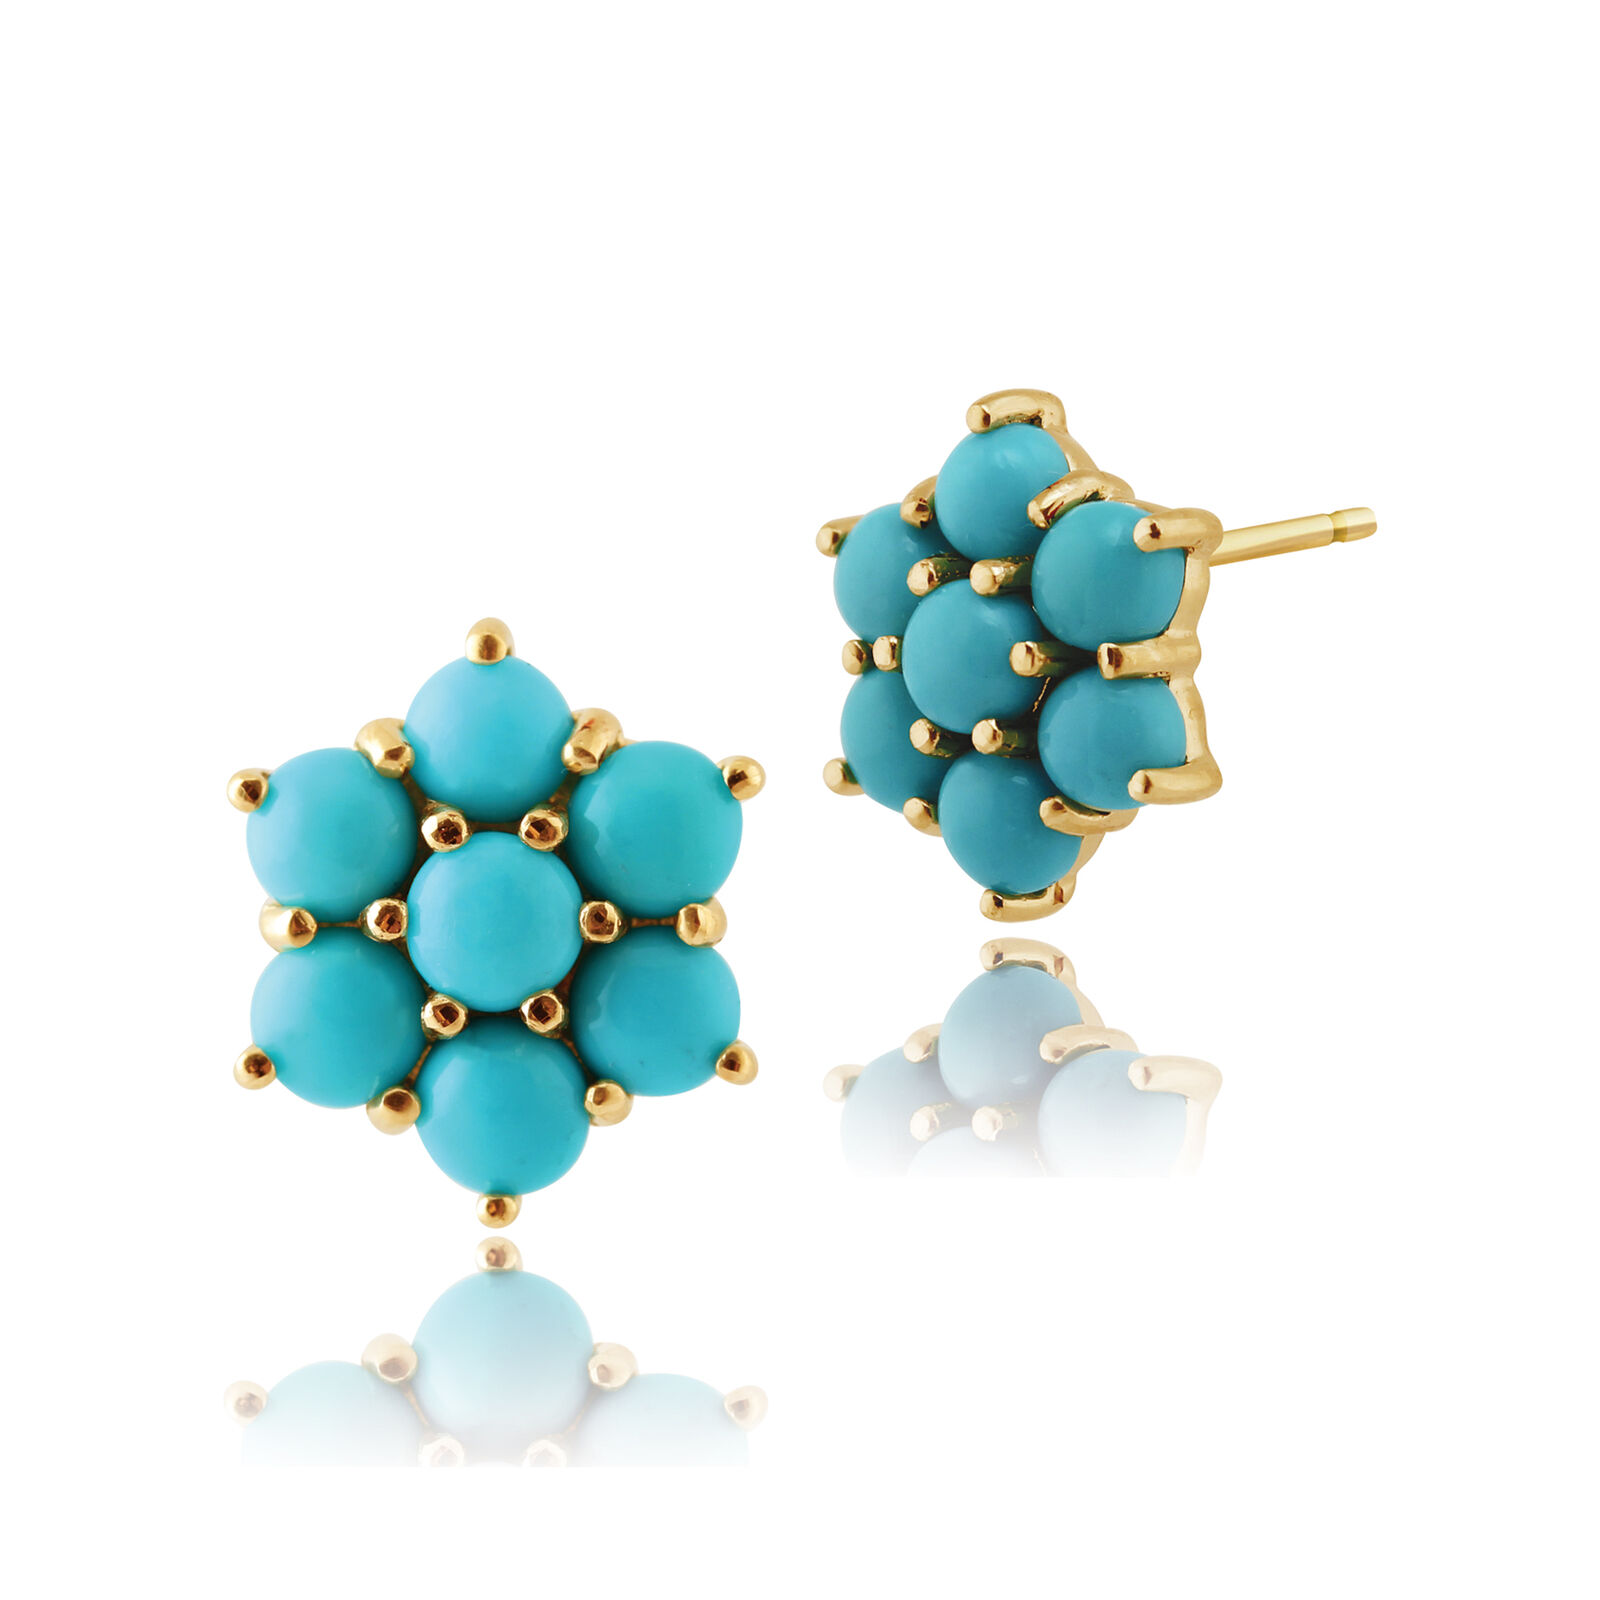 Gemondo 9ct Yellow gold 1.47ct Turquoise Cabochon Cluster Stud Earrings